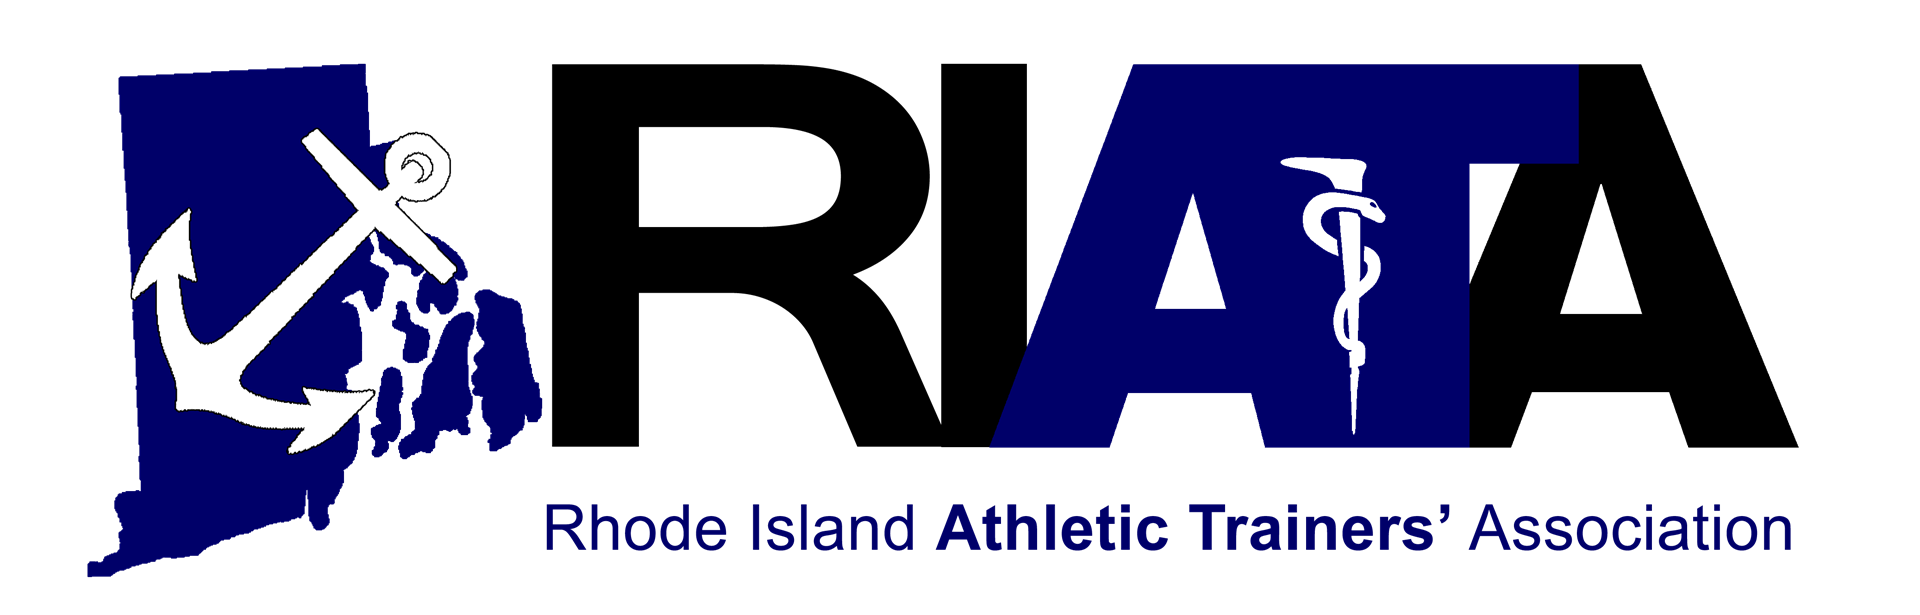 Rhode island athletic trainers association home 1betcityfo Choice Image